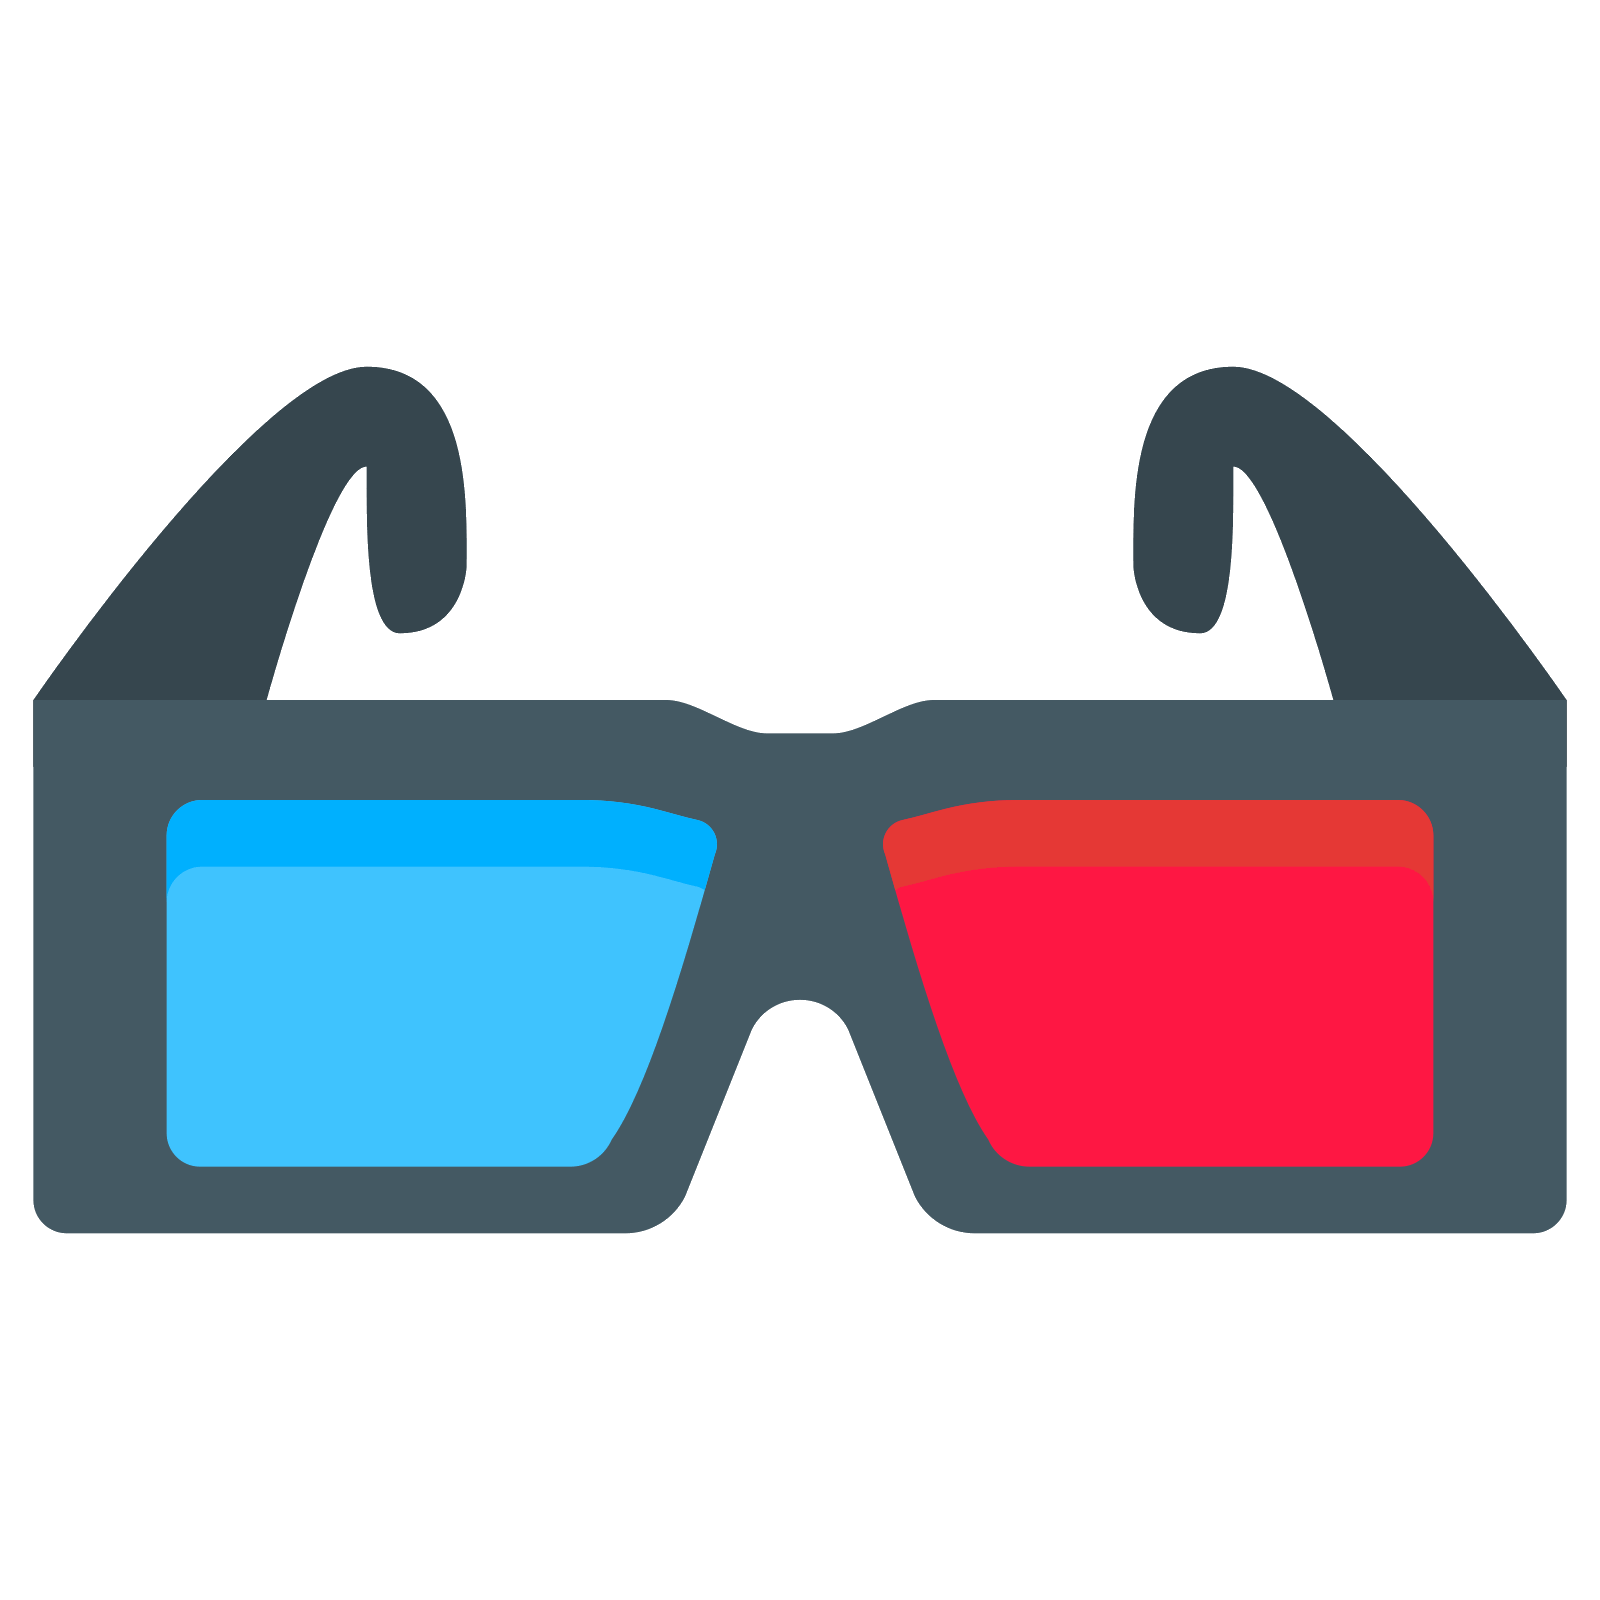 3d glasses png. D icon free